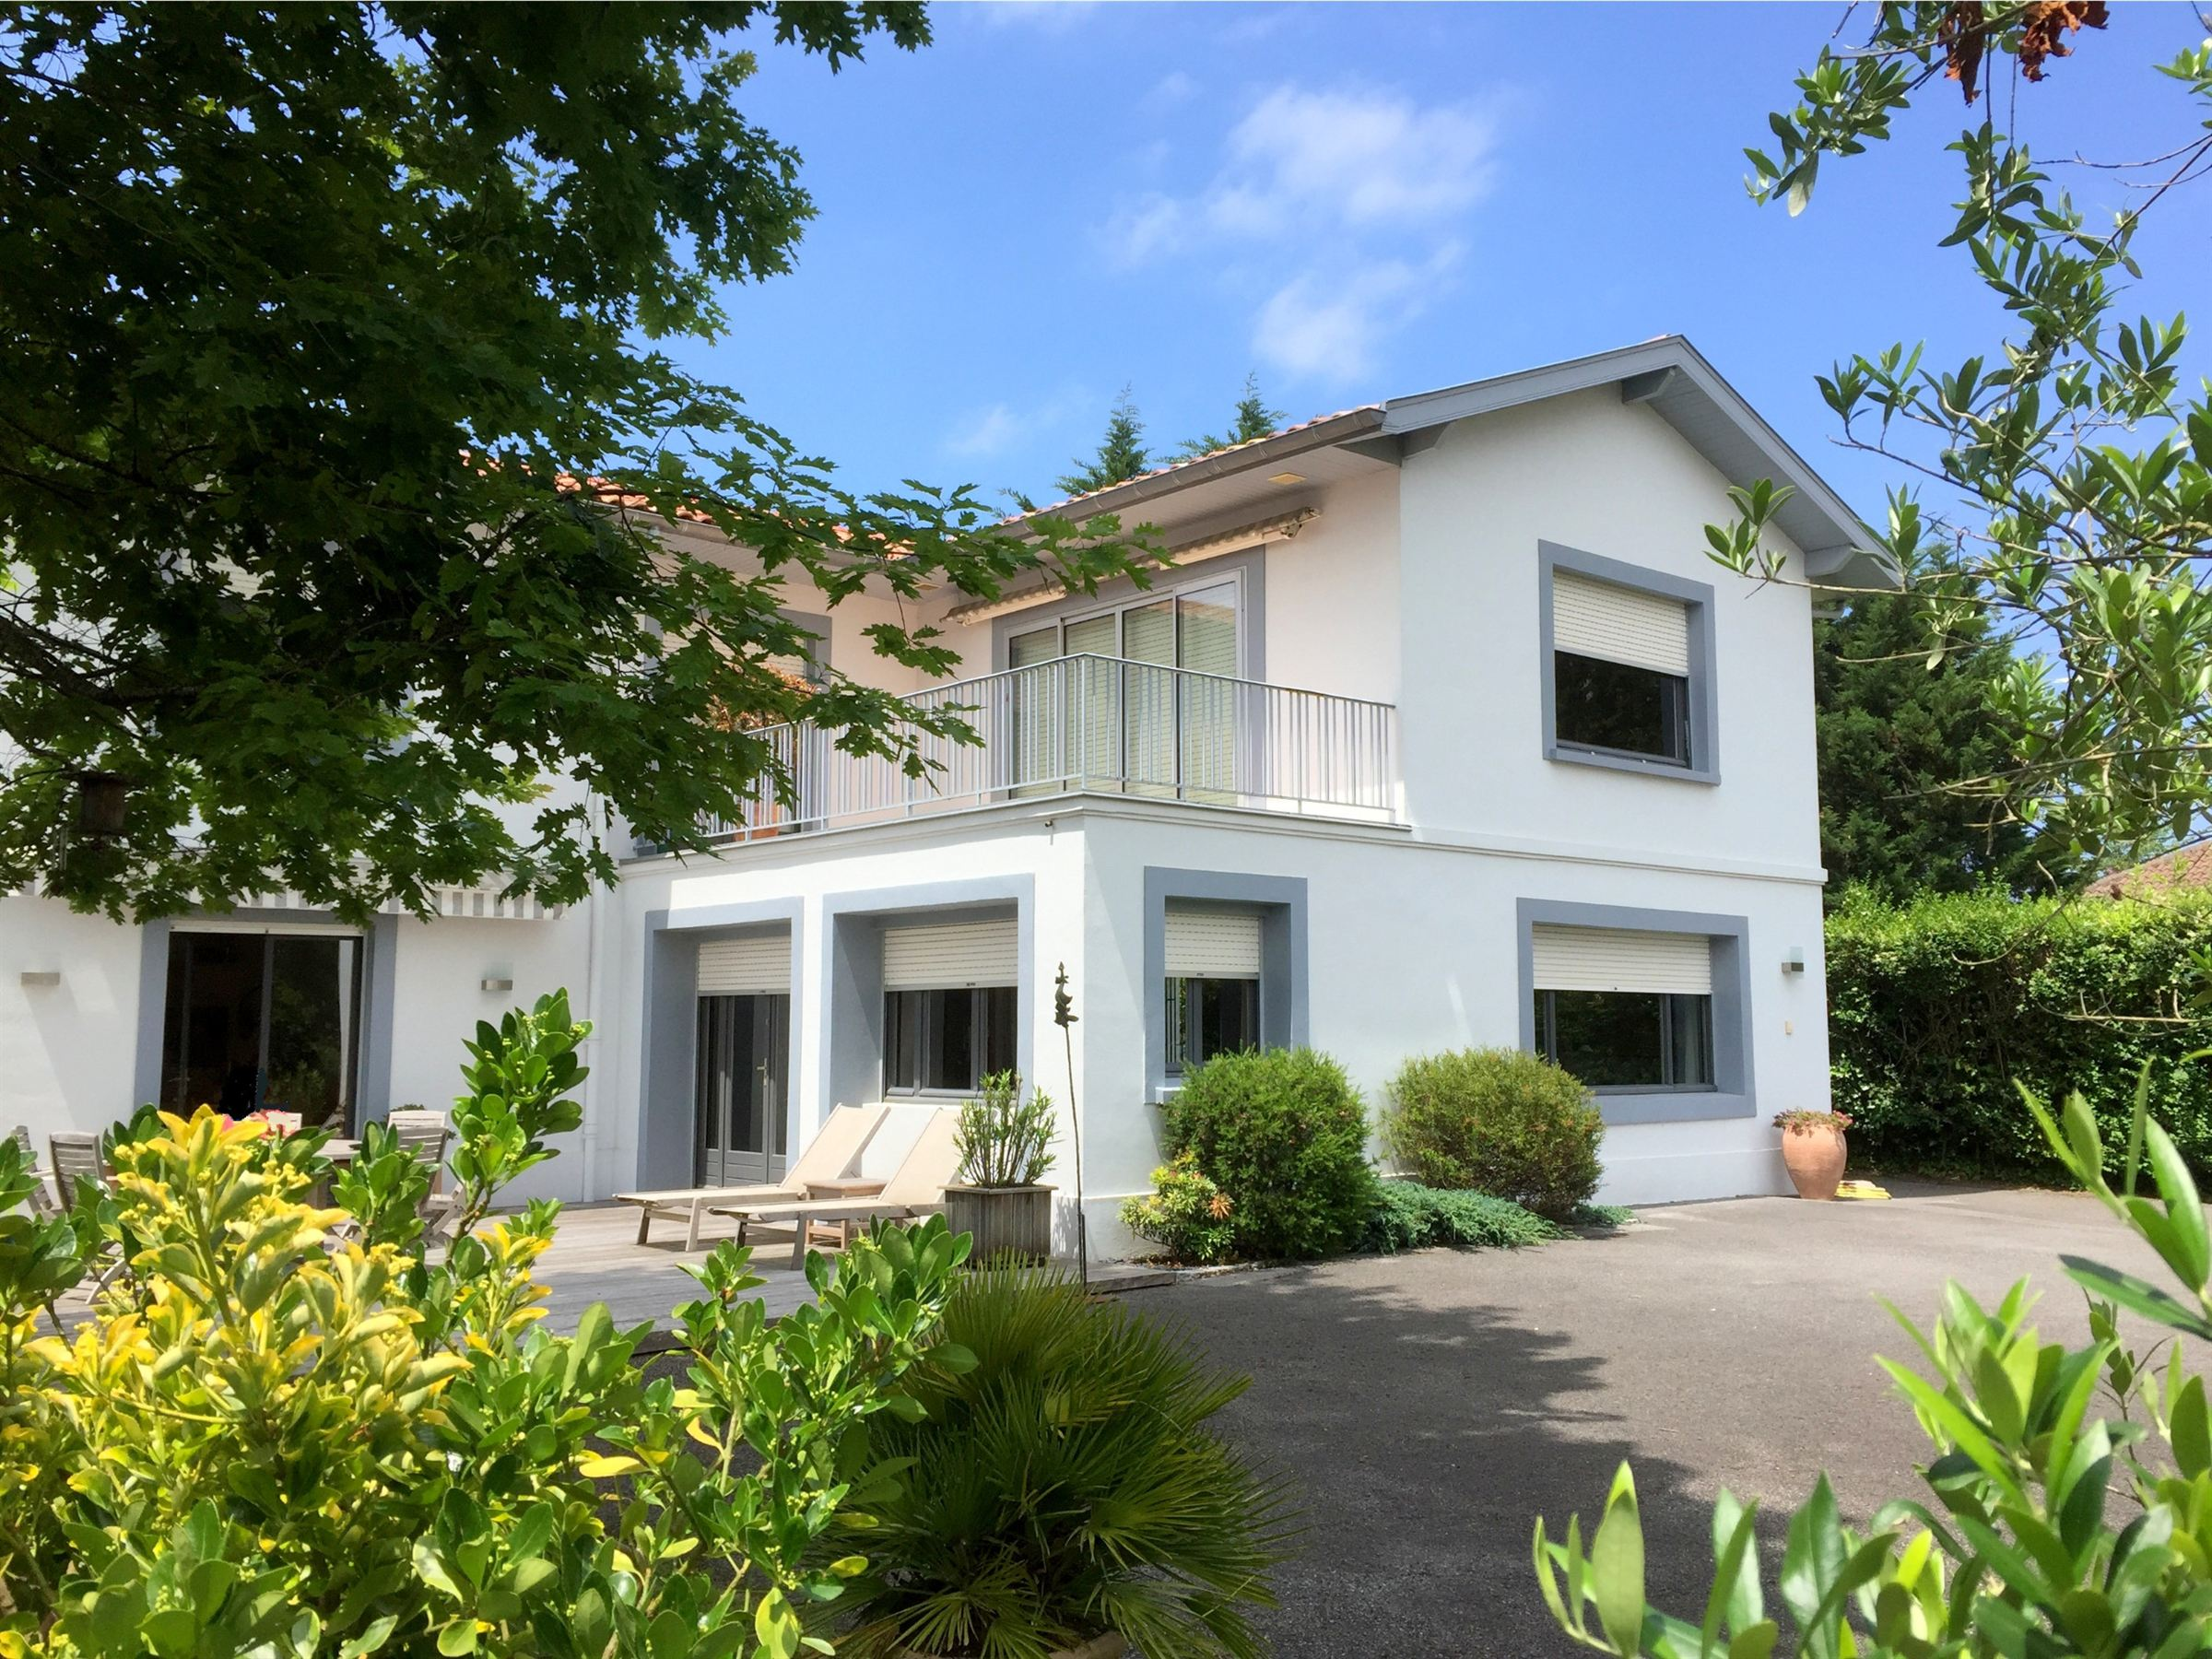 Single Family Home for Sale at BIARRITZ PARC D'HIVER Biarritz, Aquitaine, 64200 France